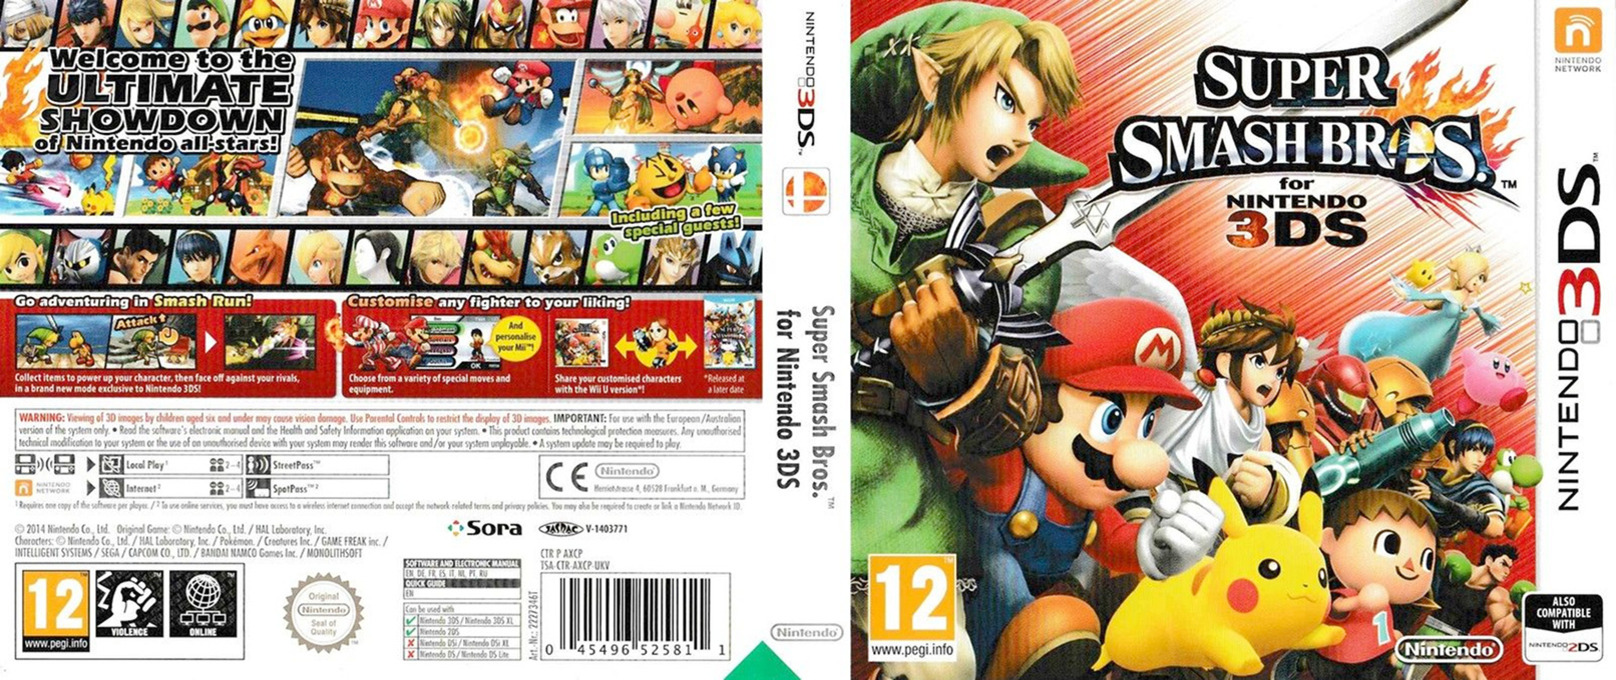 Super Smash Bros. for Nintendo 3DS 3DS coverfullHQ (AXCP)